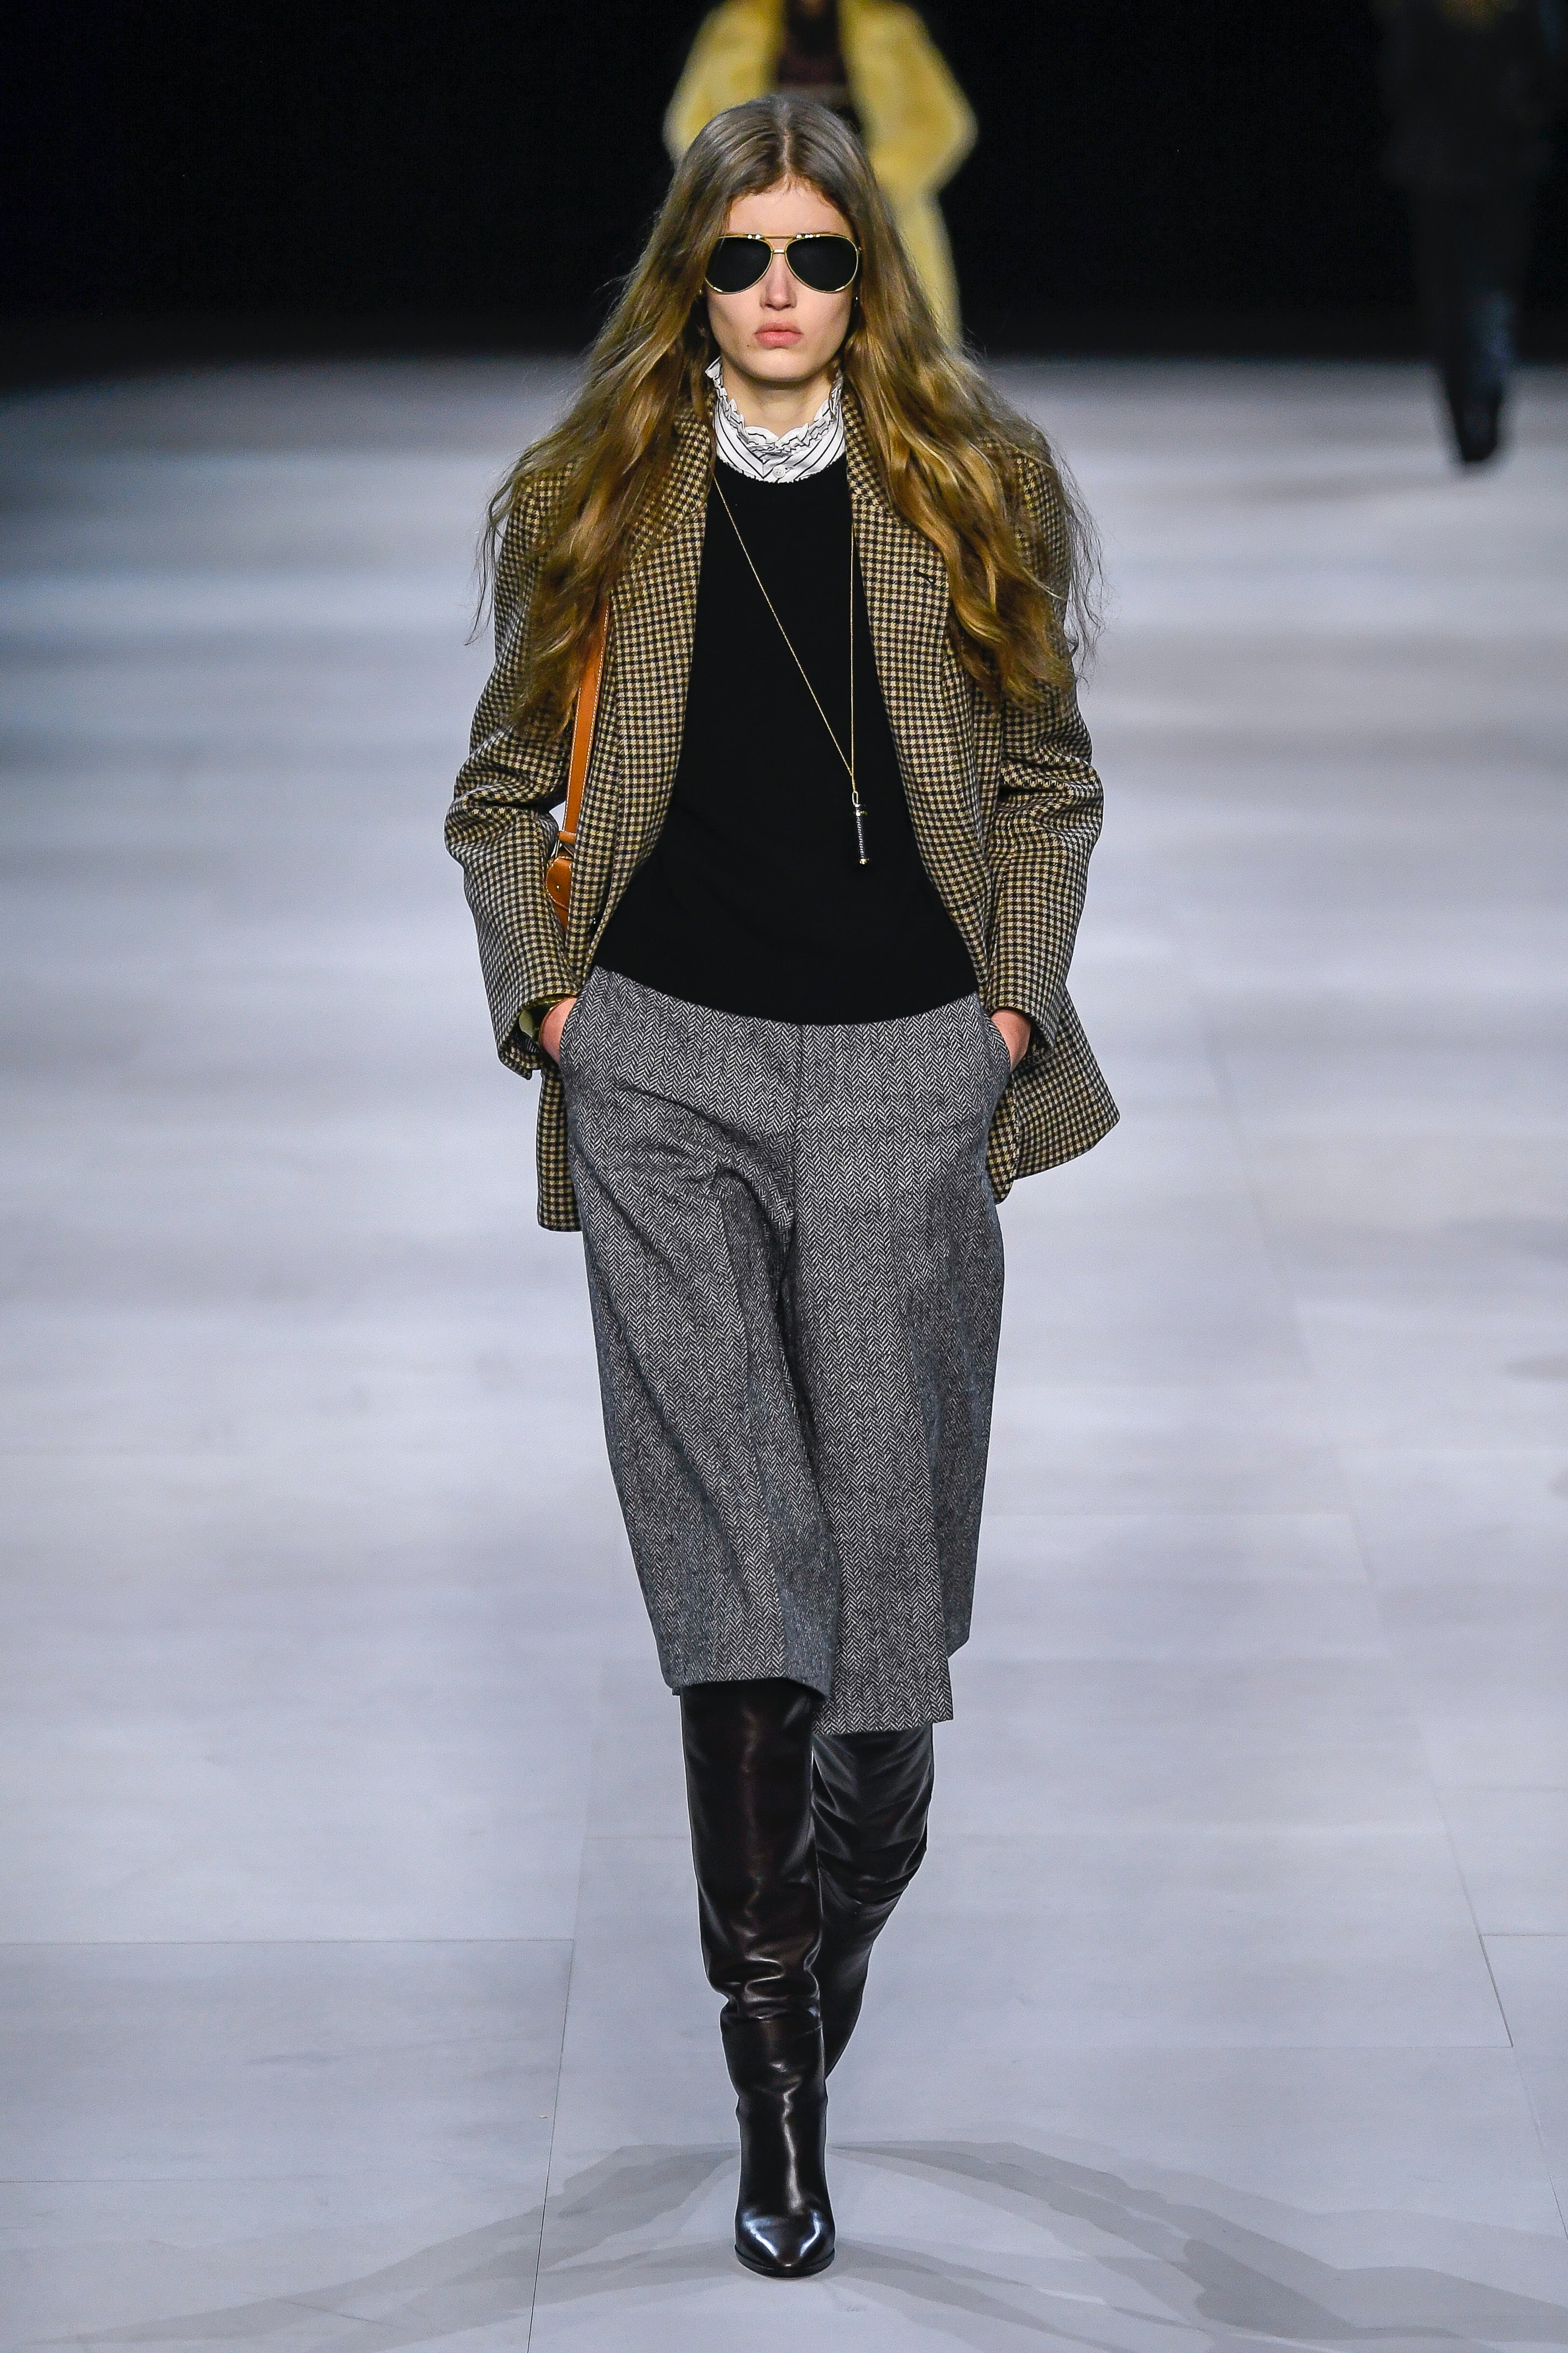 For fall 2019, Slimane pivoted to a 70s inspired,